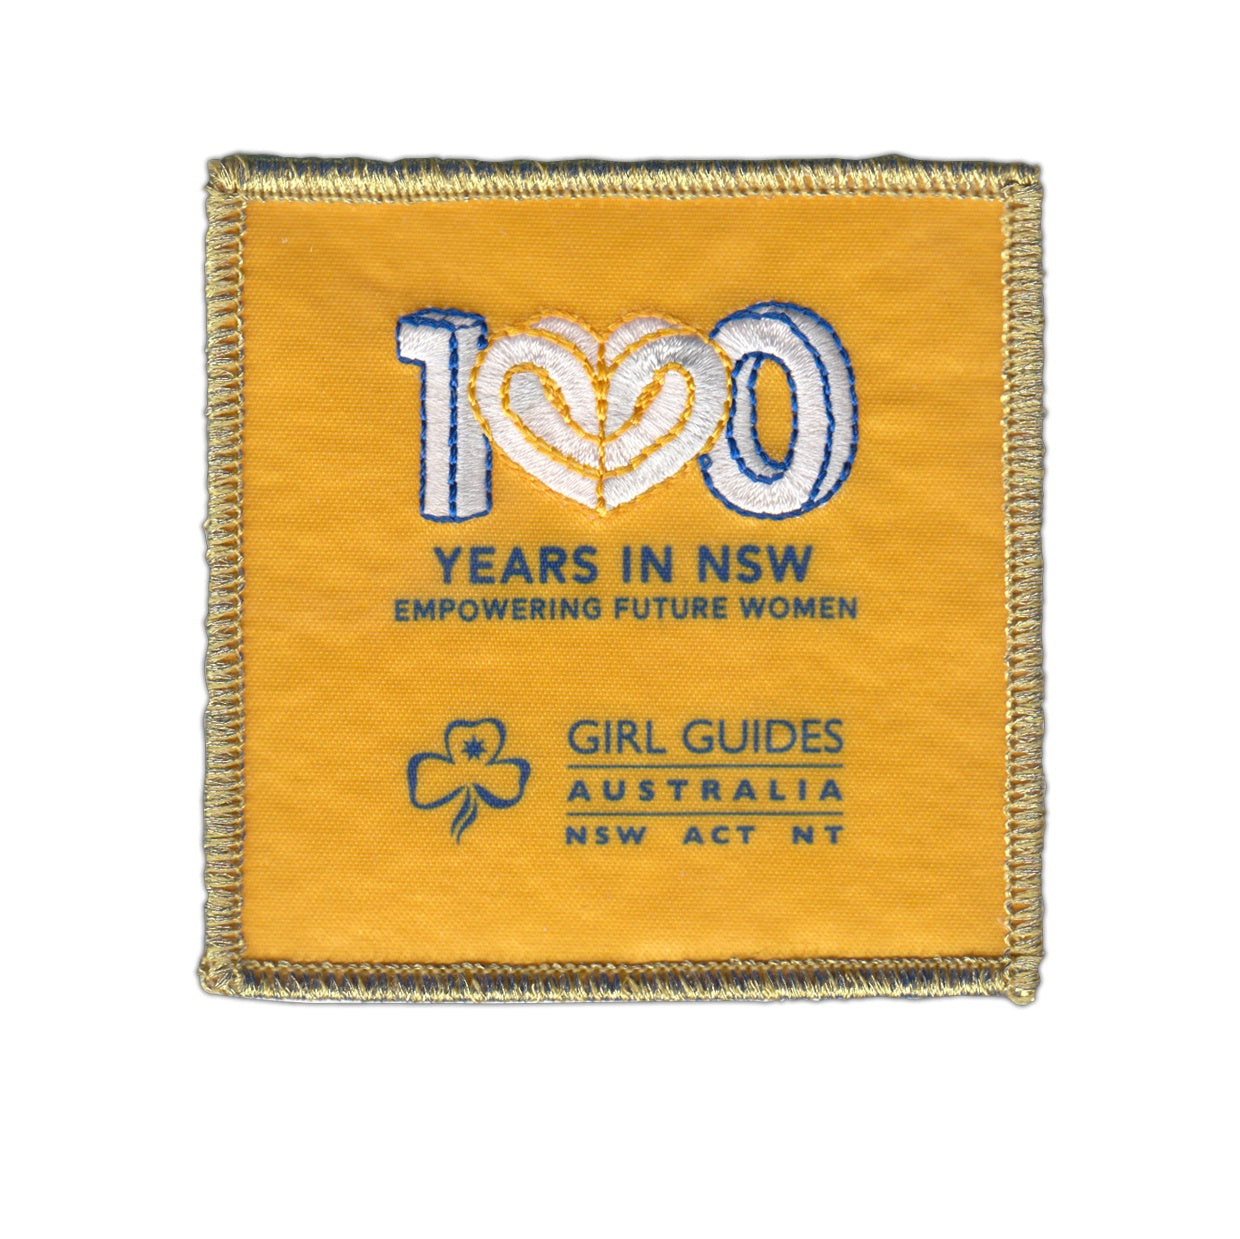 Centenary Cloth Badge